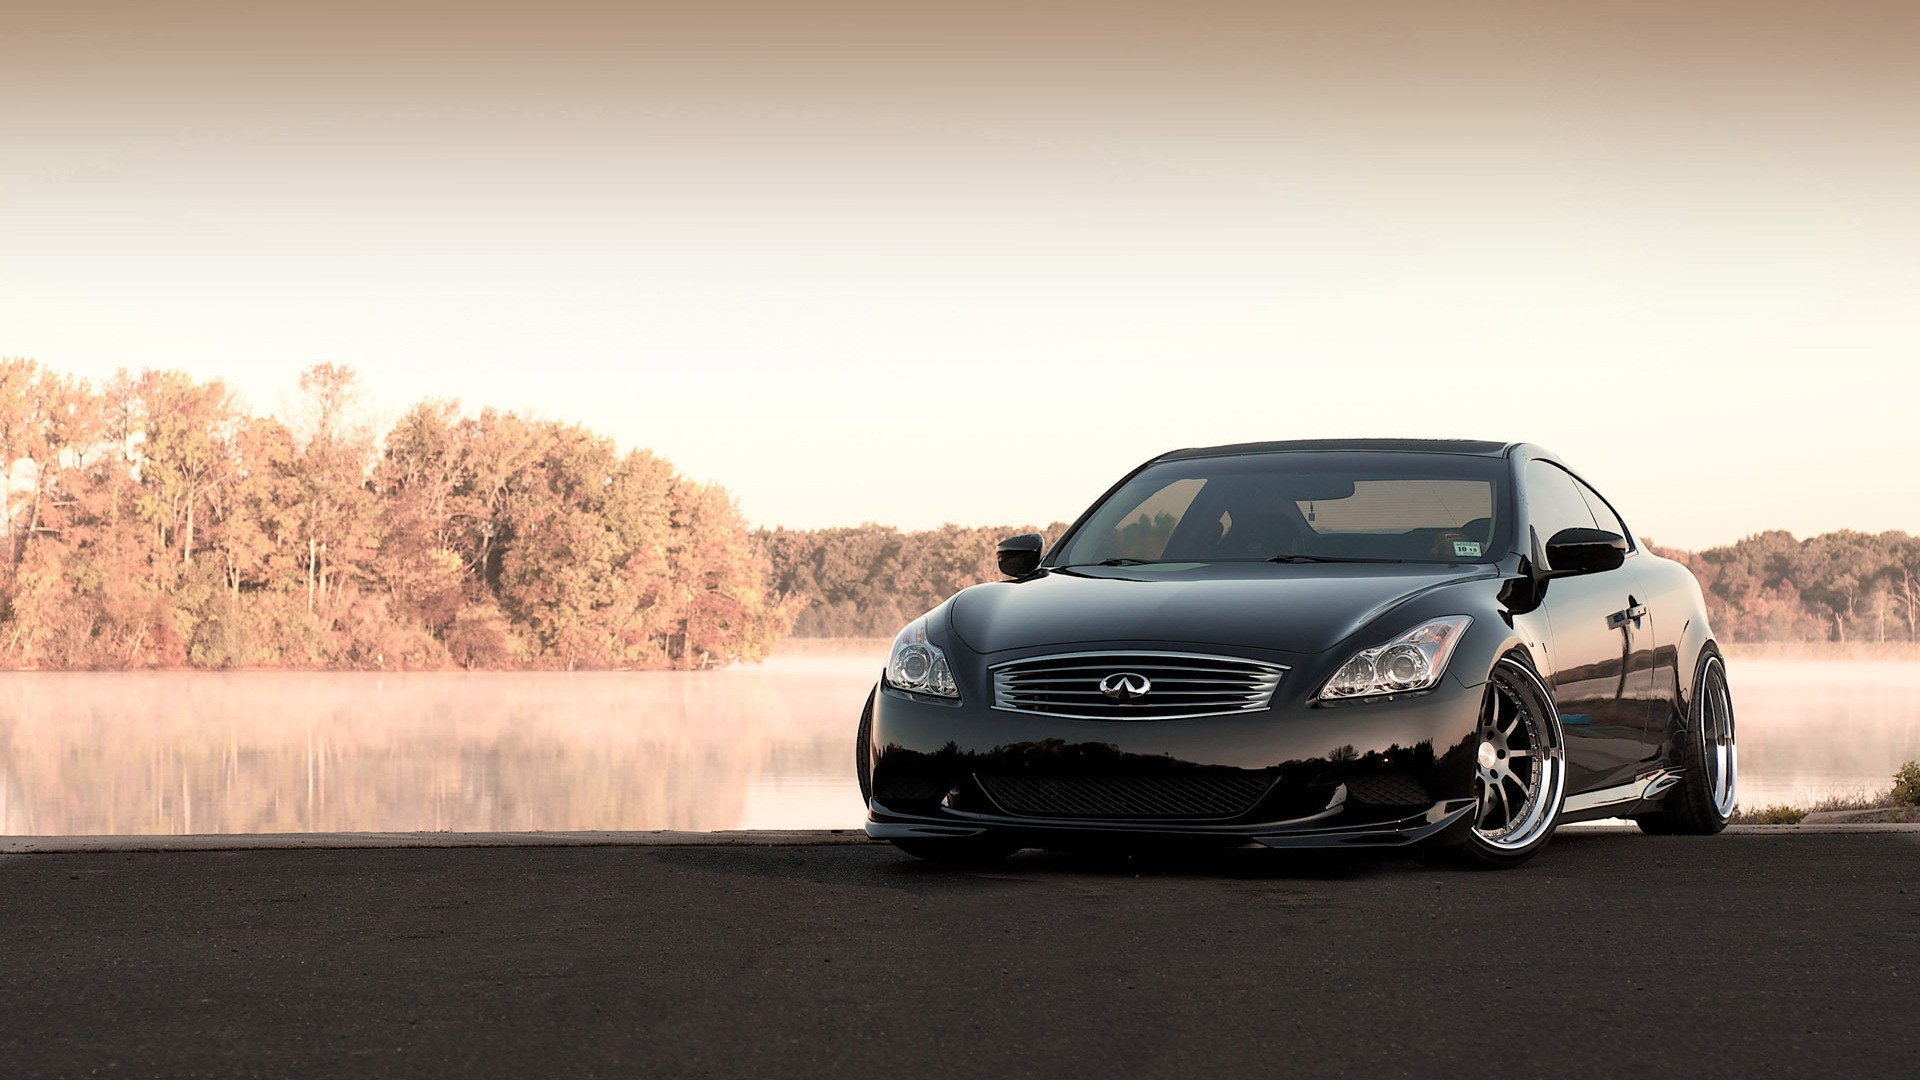 Infiniti G37 Wallpapers and Background Images   stmednet 1920x1080